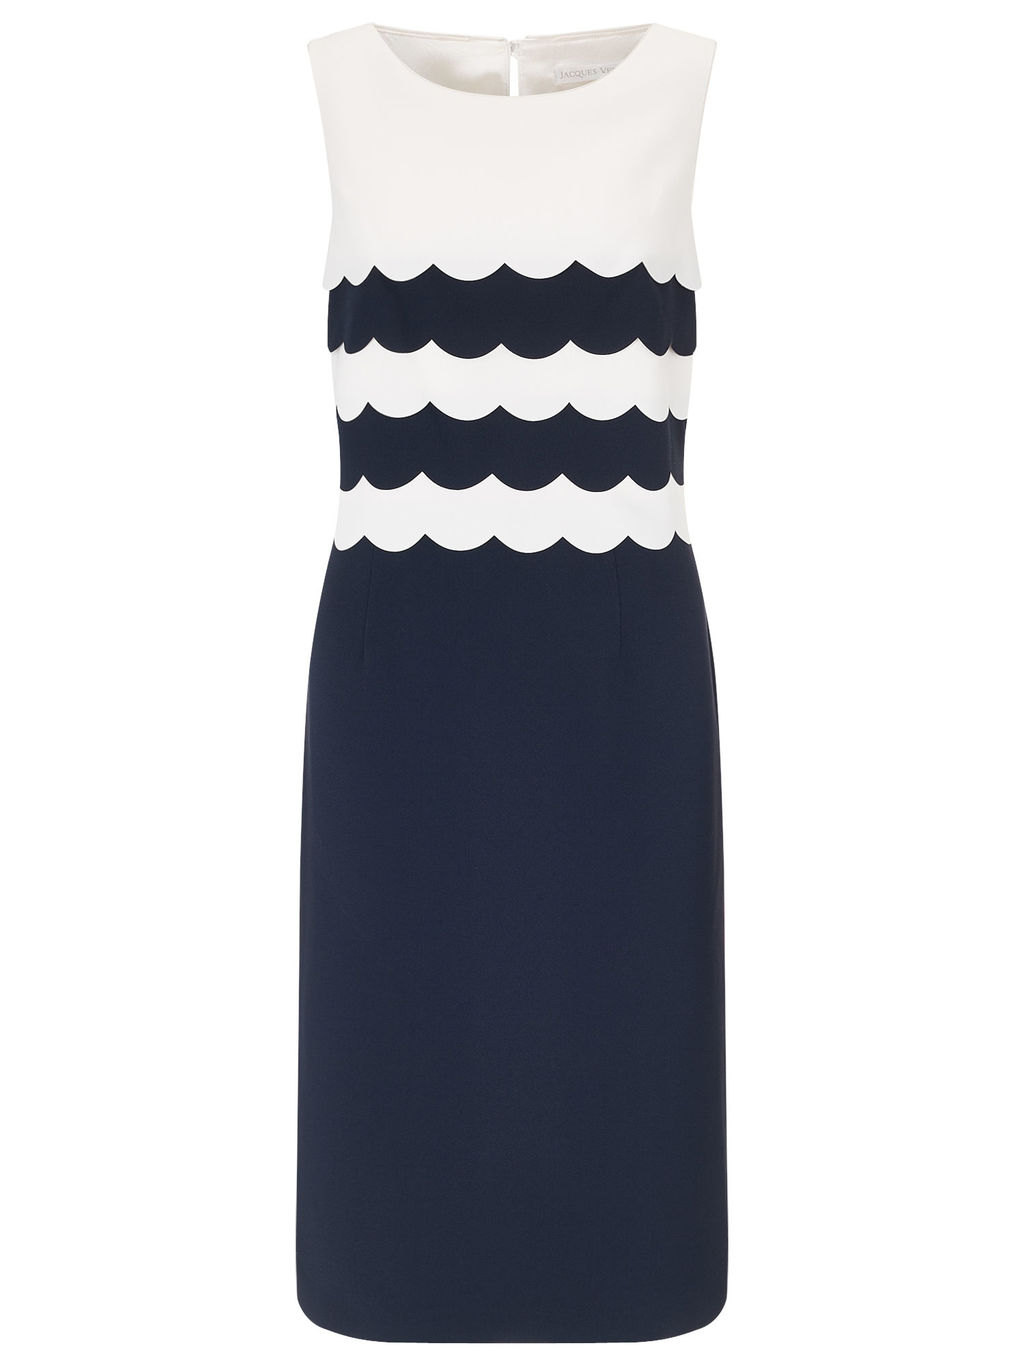 Scallop Layers Dress - style: shift; neckline: round neck; sleeve style: standard vest straps/shoulder straps; fit: tailored/fitted; secondary colour: white; predominant colour: navy; length: on the knee; fibres: polyester/polyamide - 100%; occasions: occasion; sleeve length: sleeveless; pattern type: fabric; pattern size: standard; pattern: colourblock; texture group: woven light midweight; season: a/w 2015